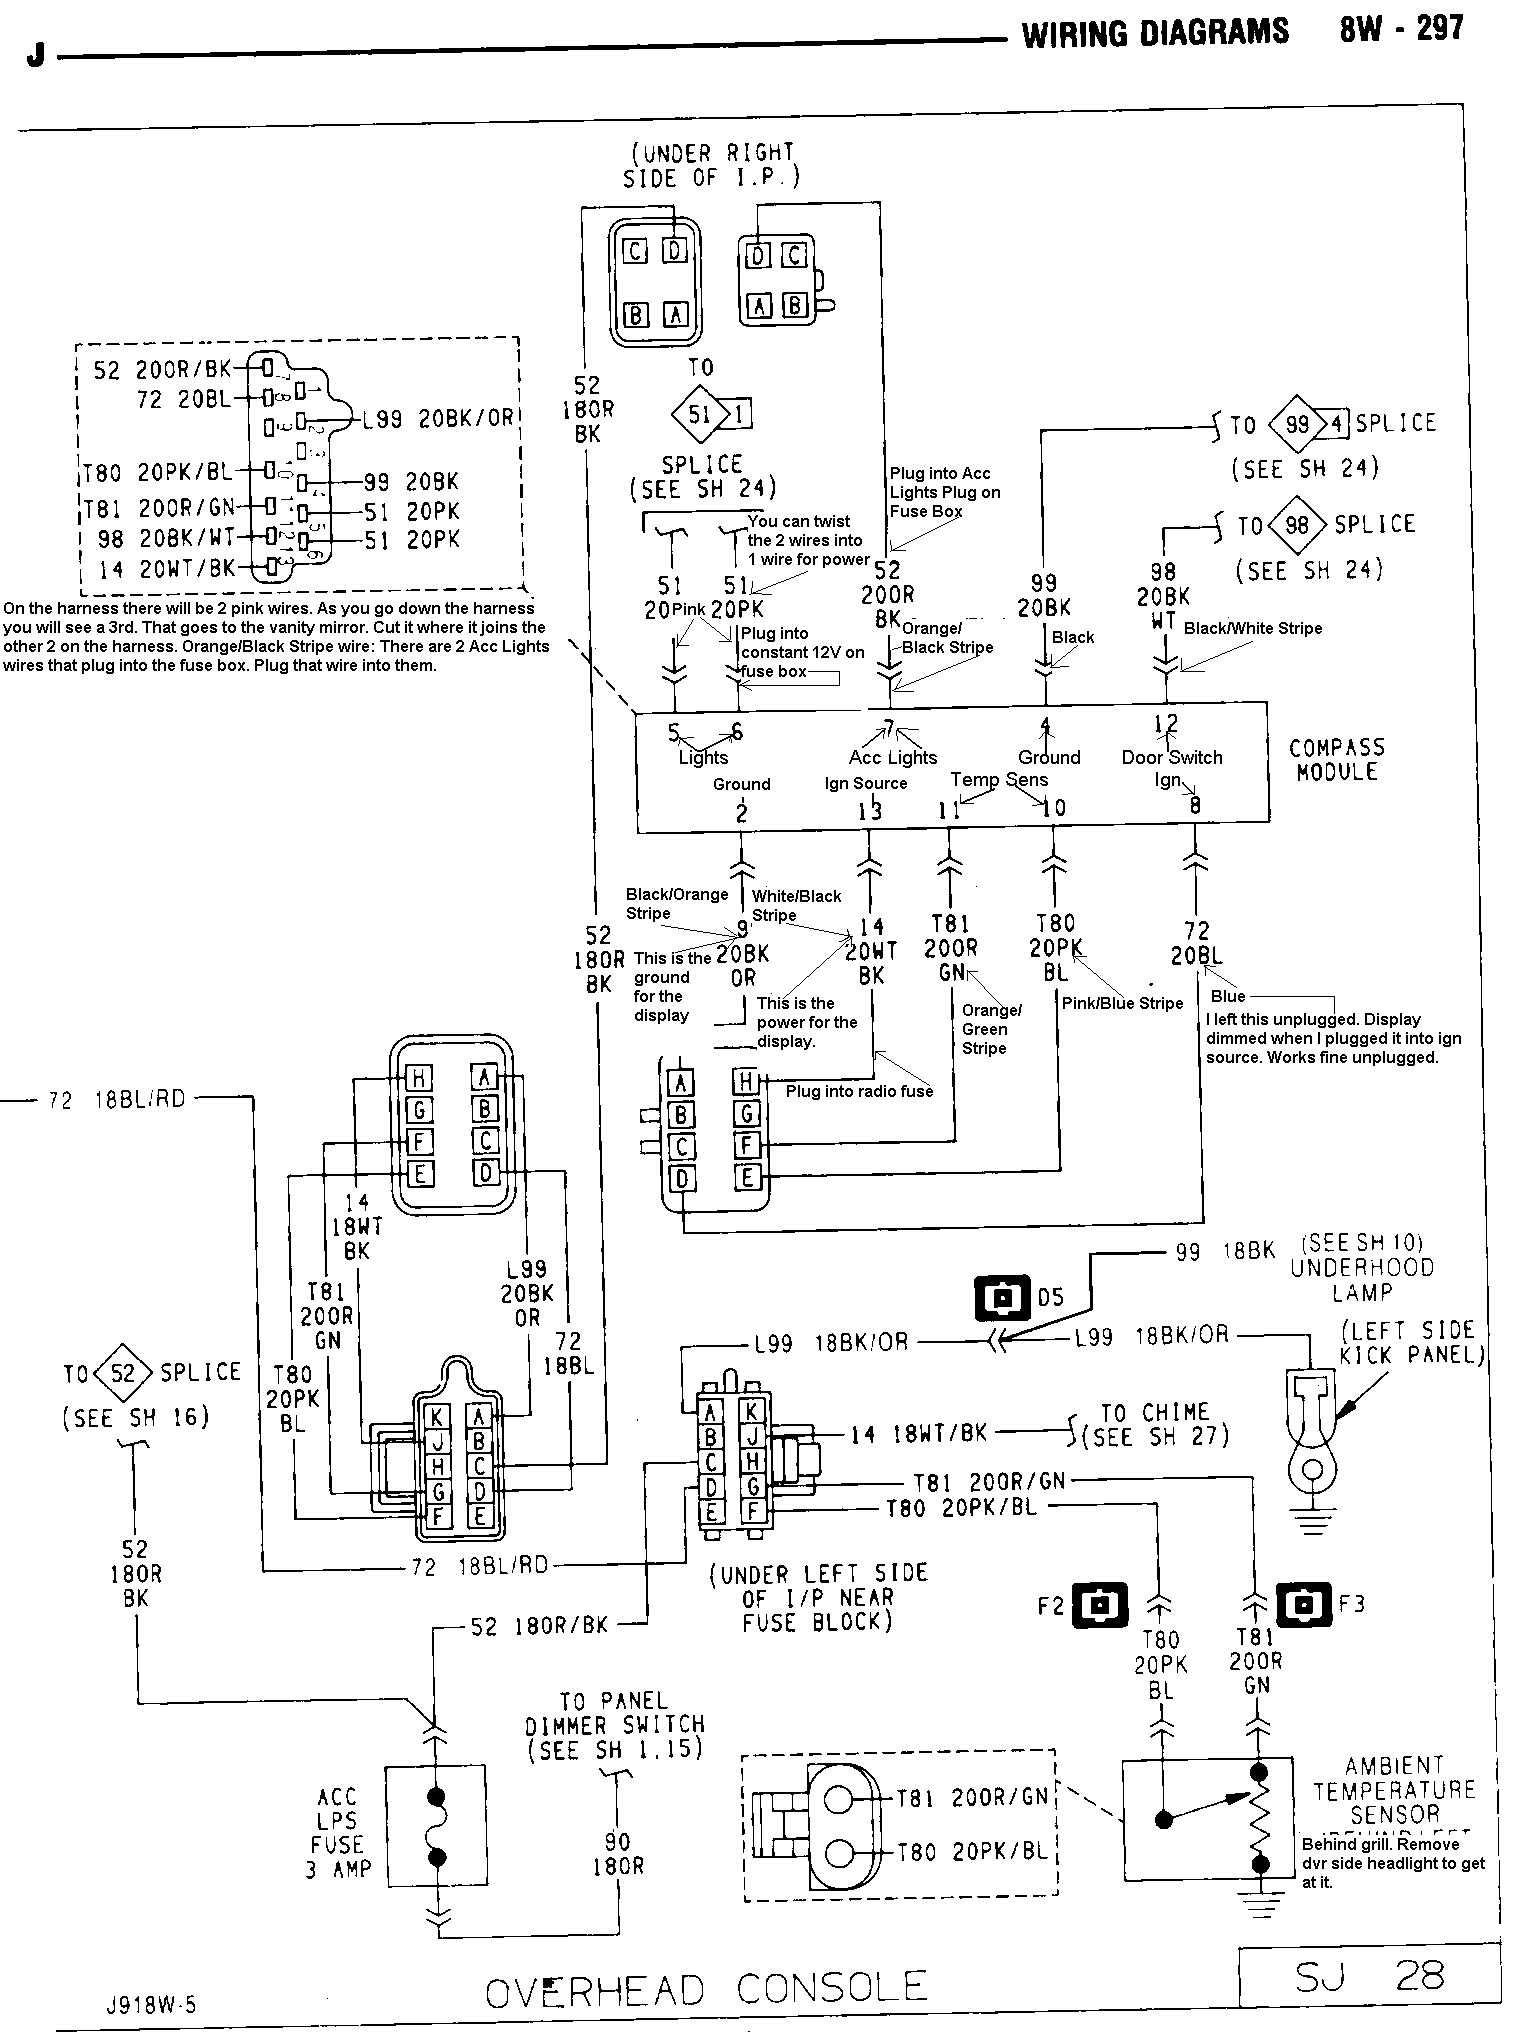 91consolediagrammodified tom 'oljeep' collins fsj wiring page 1978 jeep wagoneer wiring diagram at n-0.co